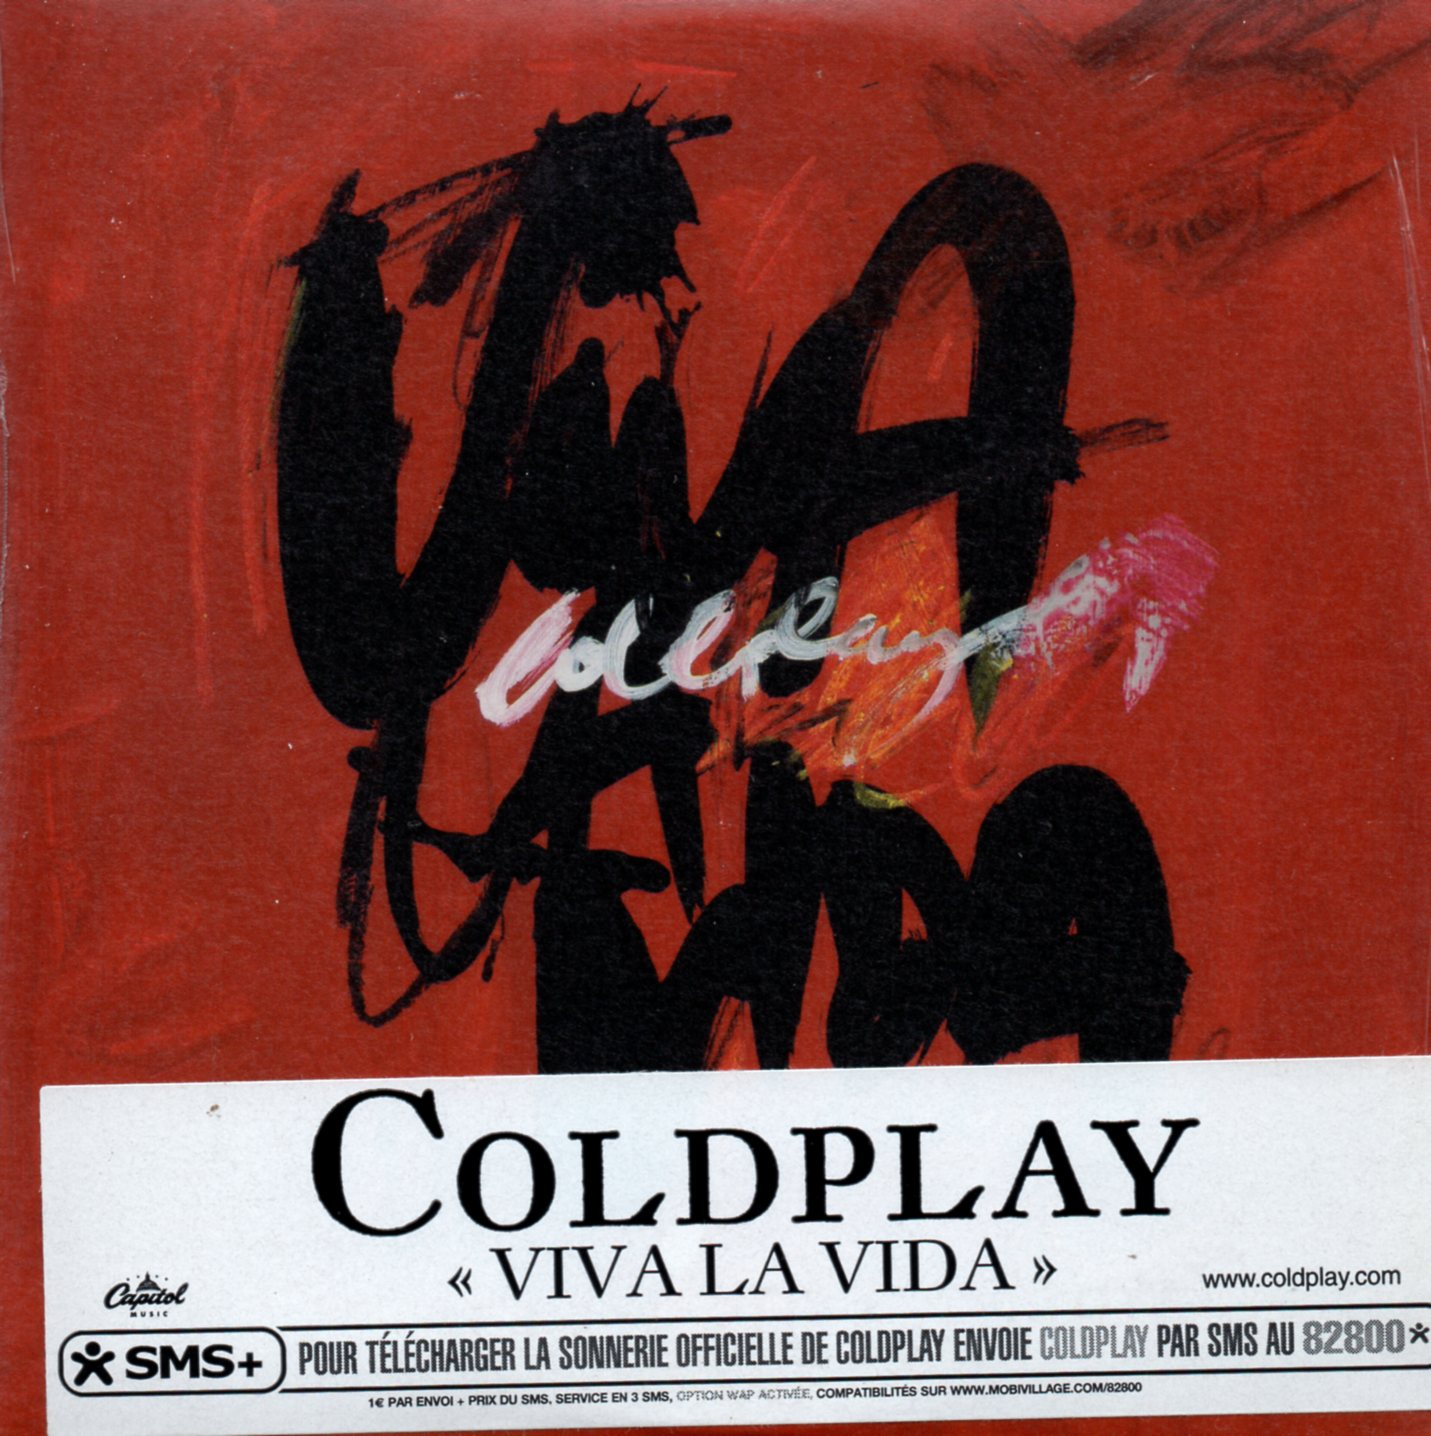 COLDPLAY - Viva La Vida Card Sleeve 2 Tracks Sticker